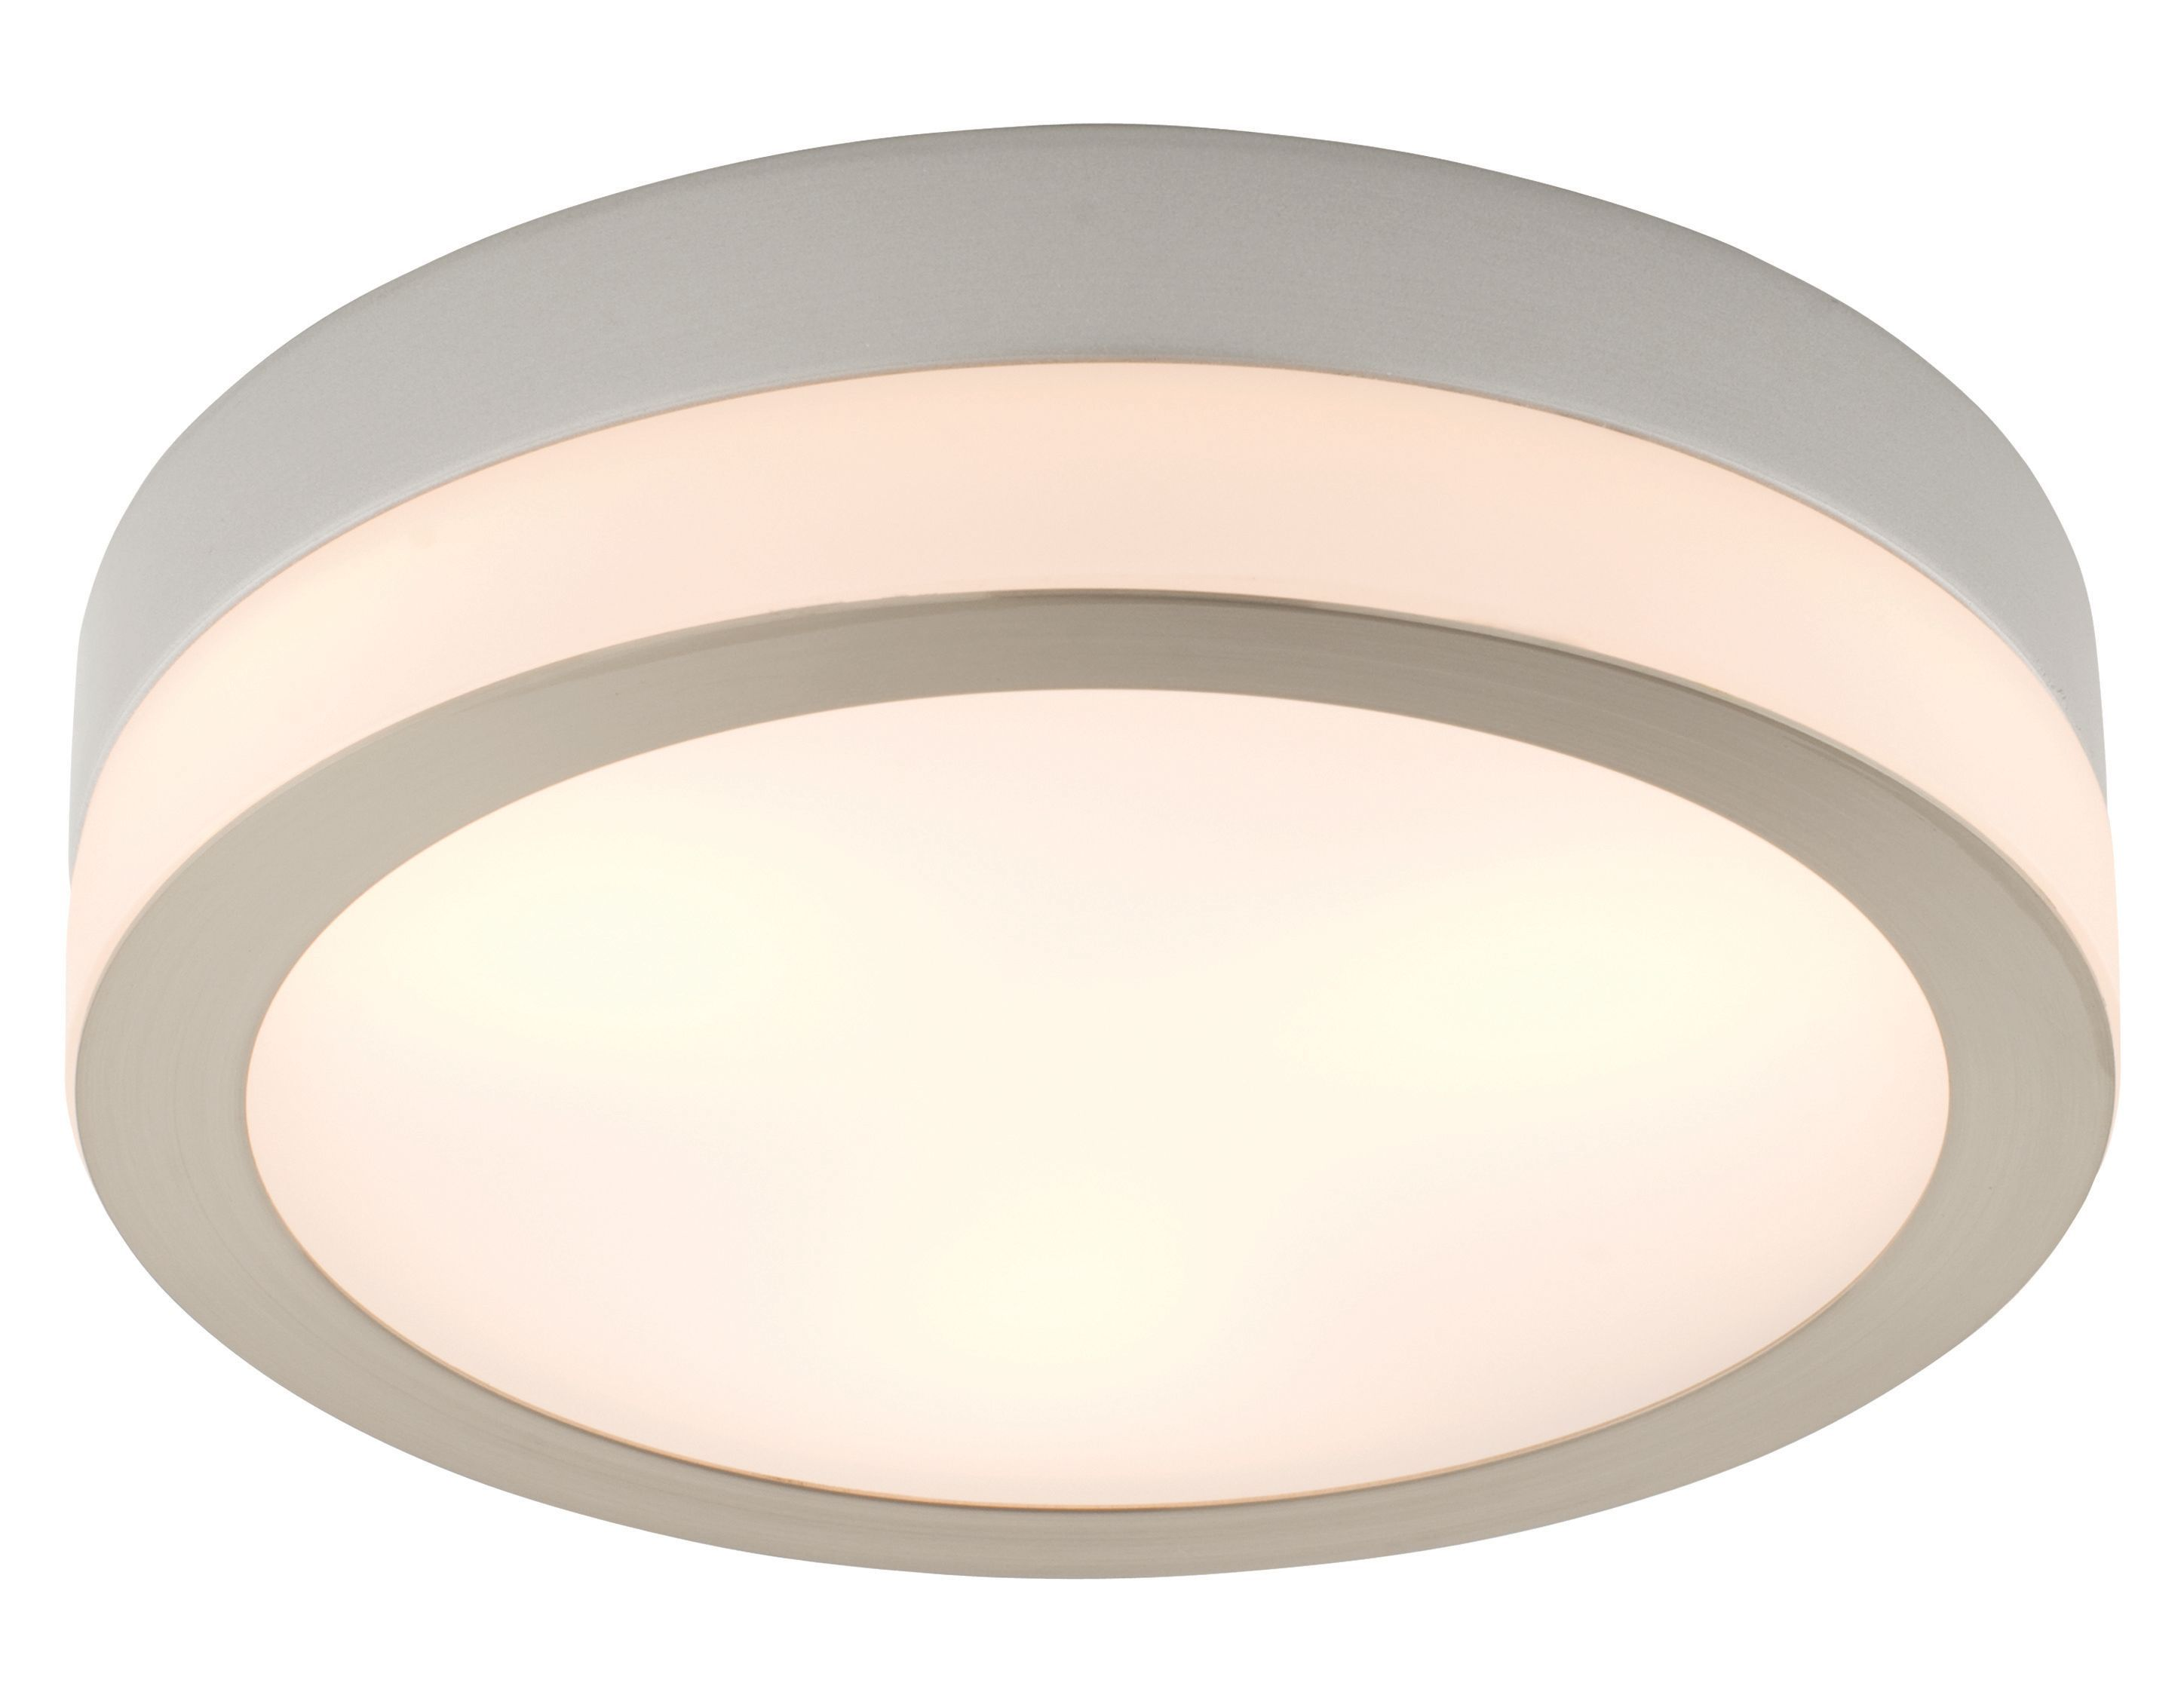 Takko 0493 Bathroom Ceiling Light Ip44: Decoratingspecial.com